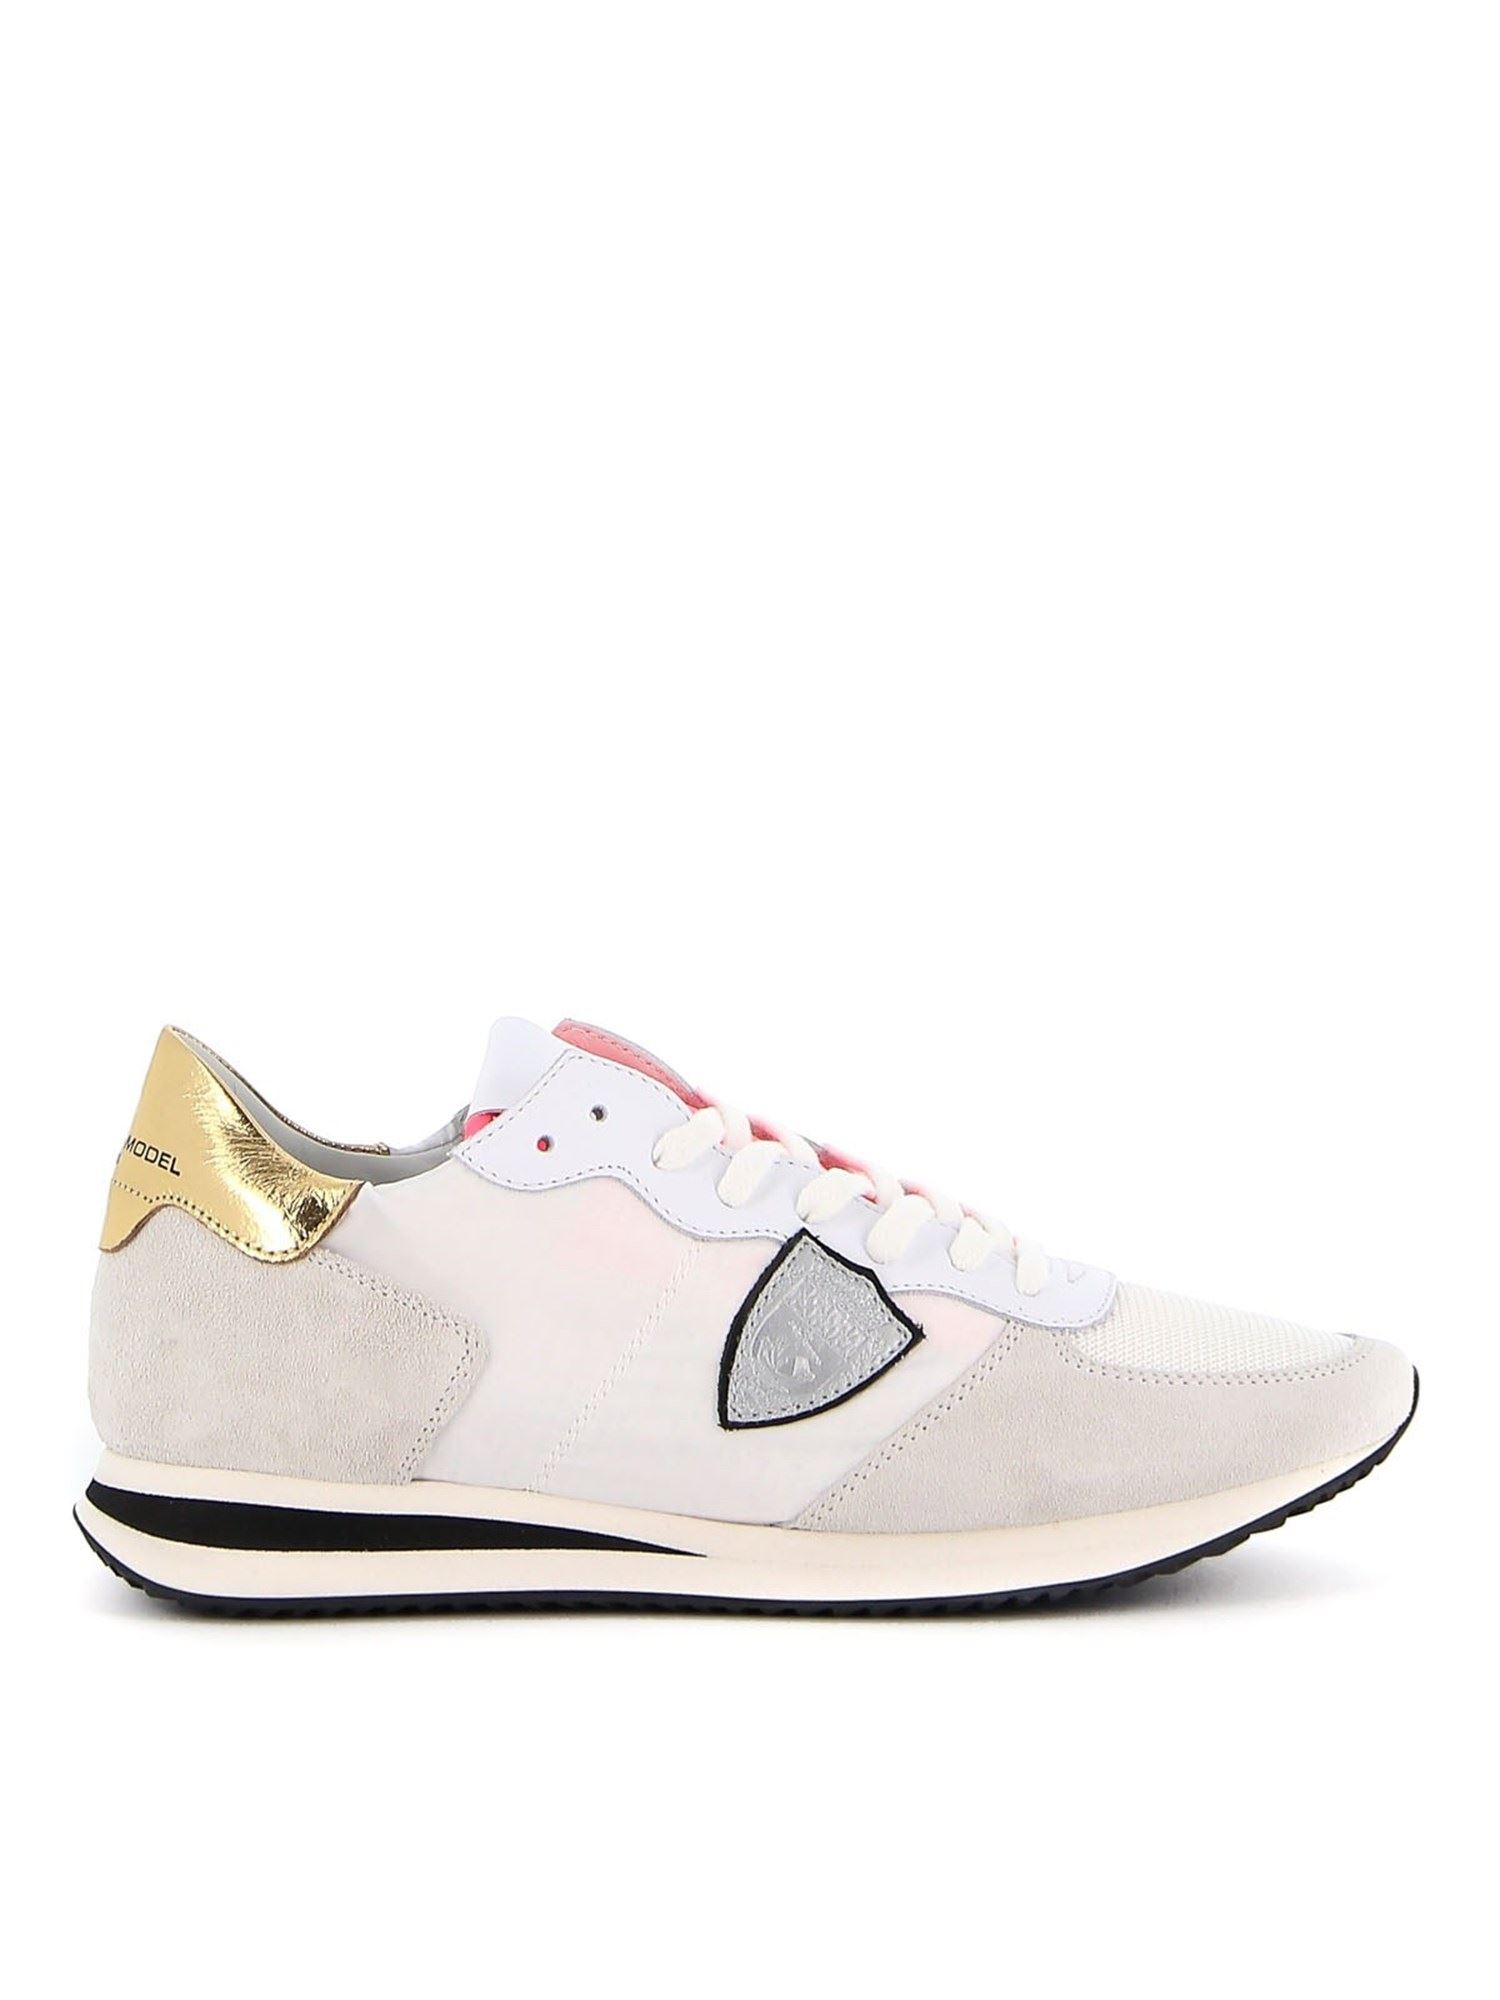 Philippe Model TRPX LOW MONDIAL NEON SNEAKERS IN WHITE